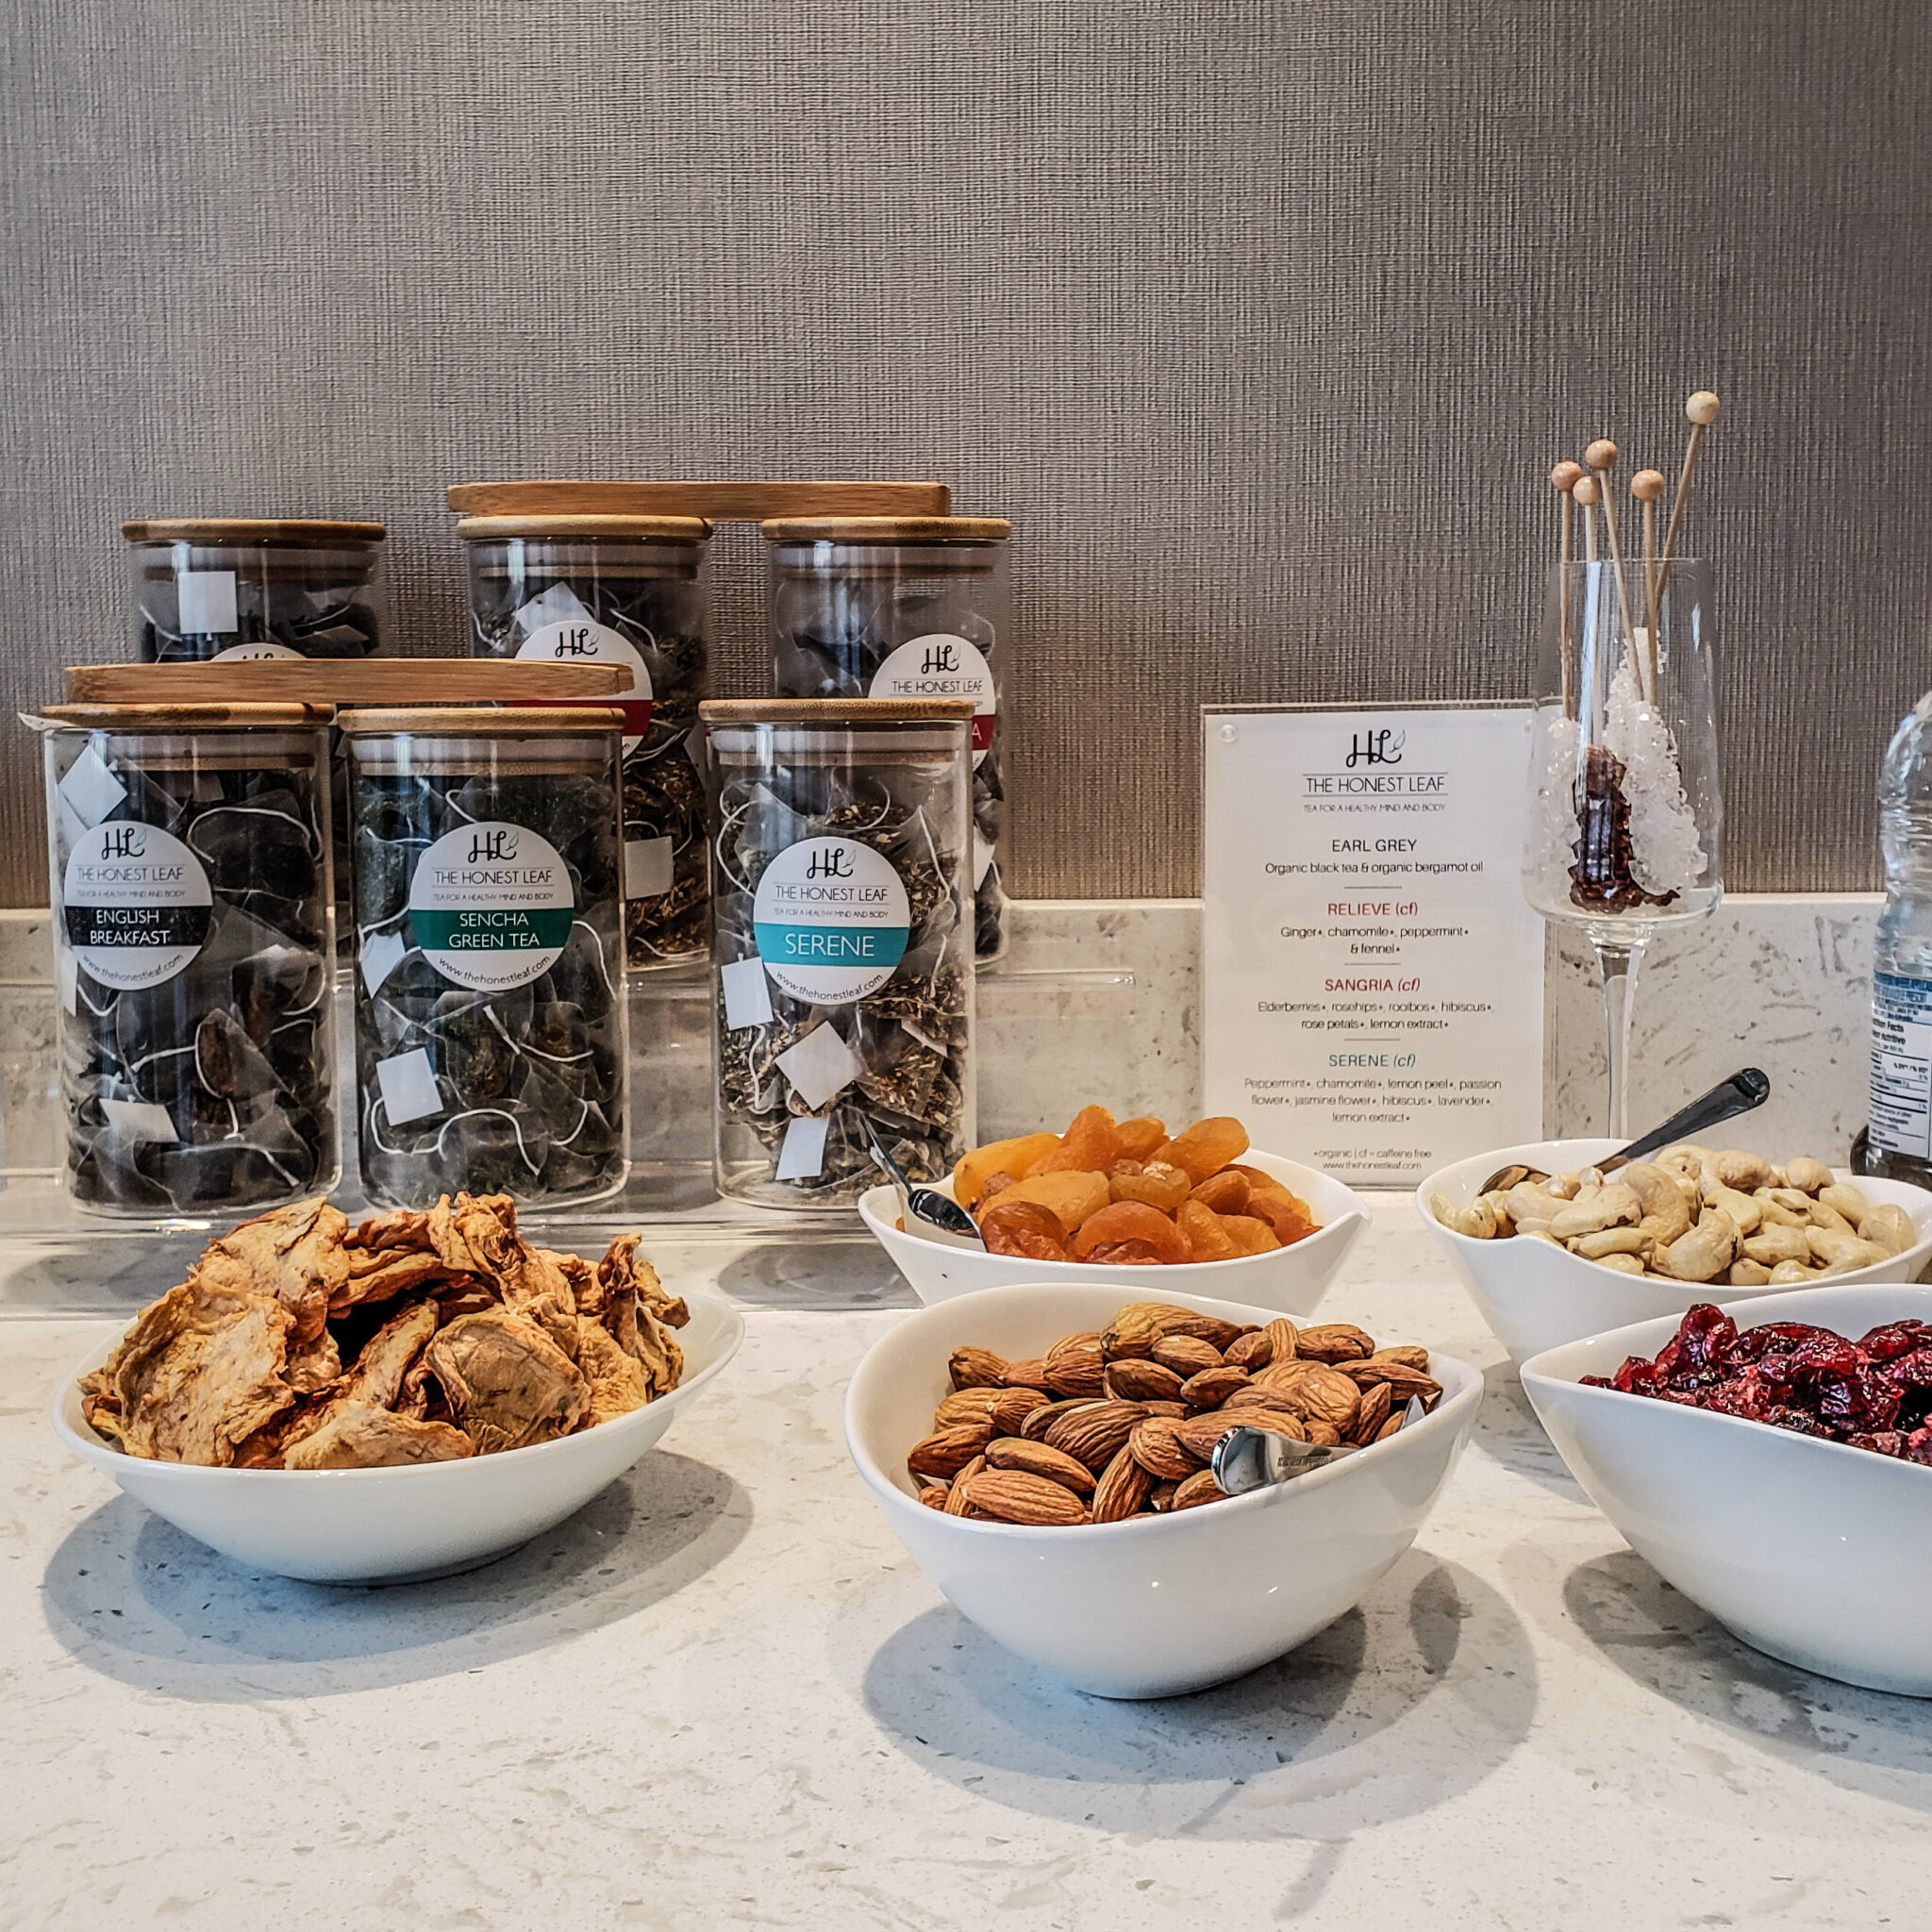 Hotel X Toronto - Luxury Resort - Guerlain Spa - Lounge - Healthy Treats